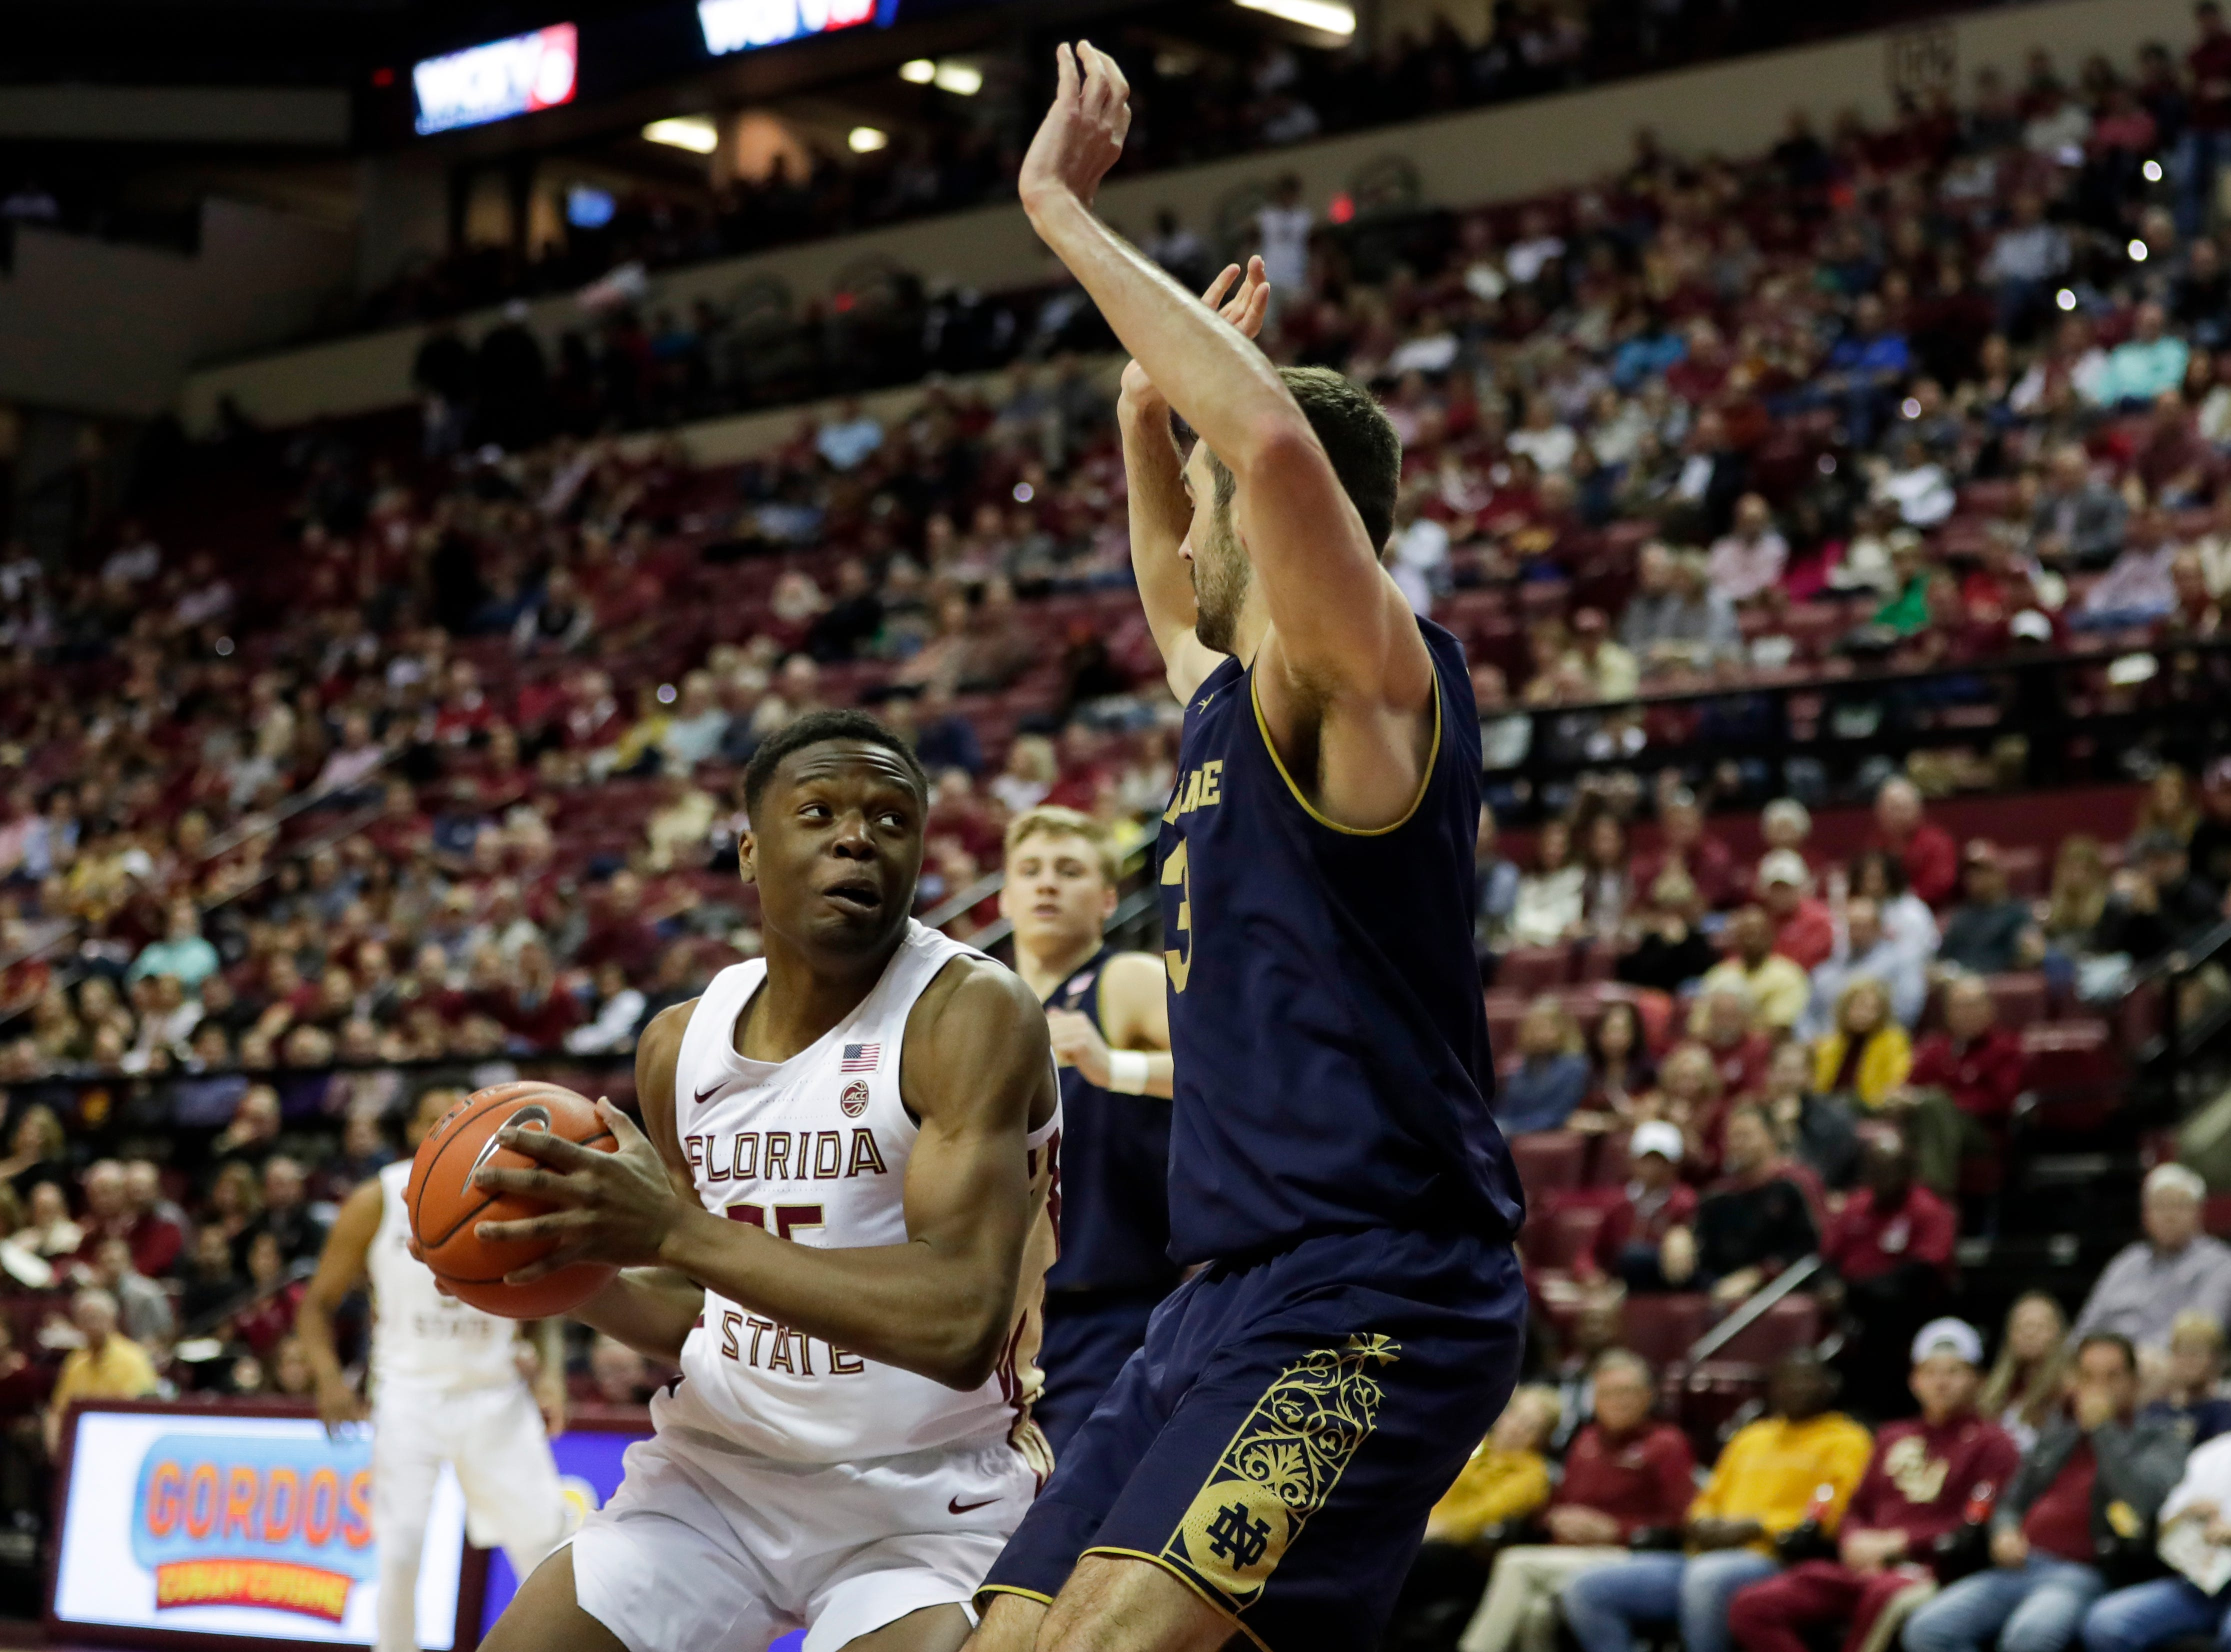 Florida State Seminoles forward Mfiondu Kabengele (25) goes up against a defender during a game between FSU and Notre Dame at the Donald L. Tucker Civic Center Monday, Feb. 25, 2019.